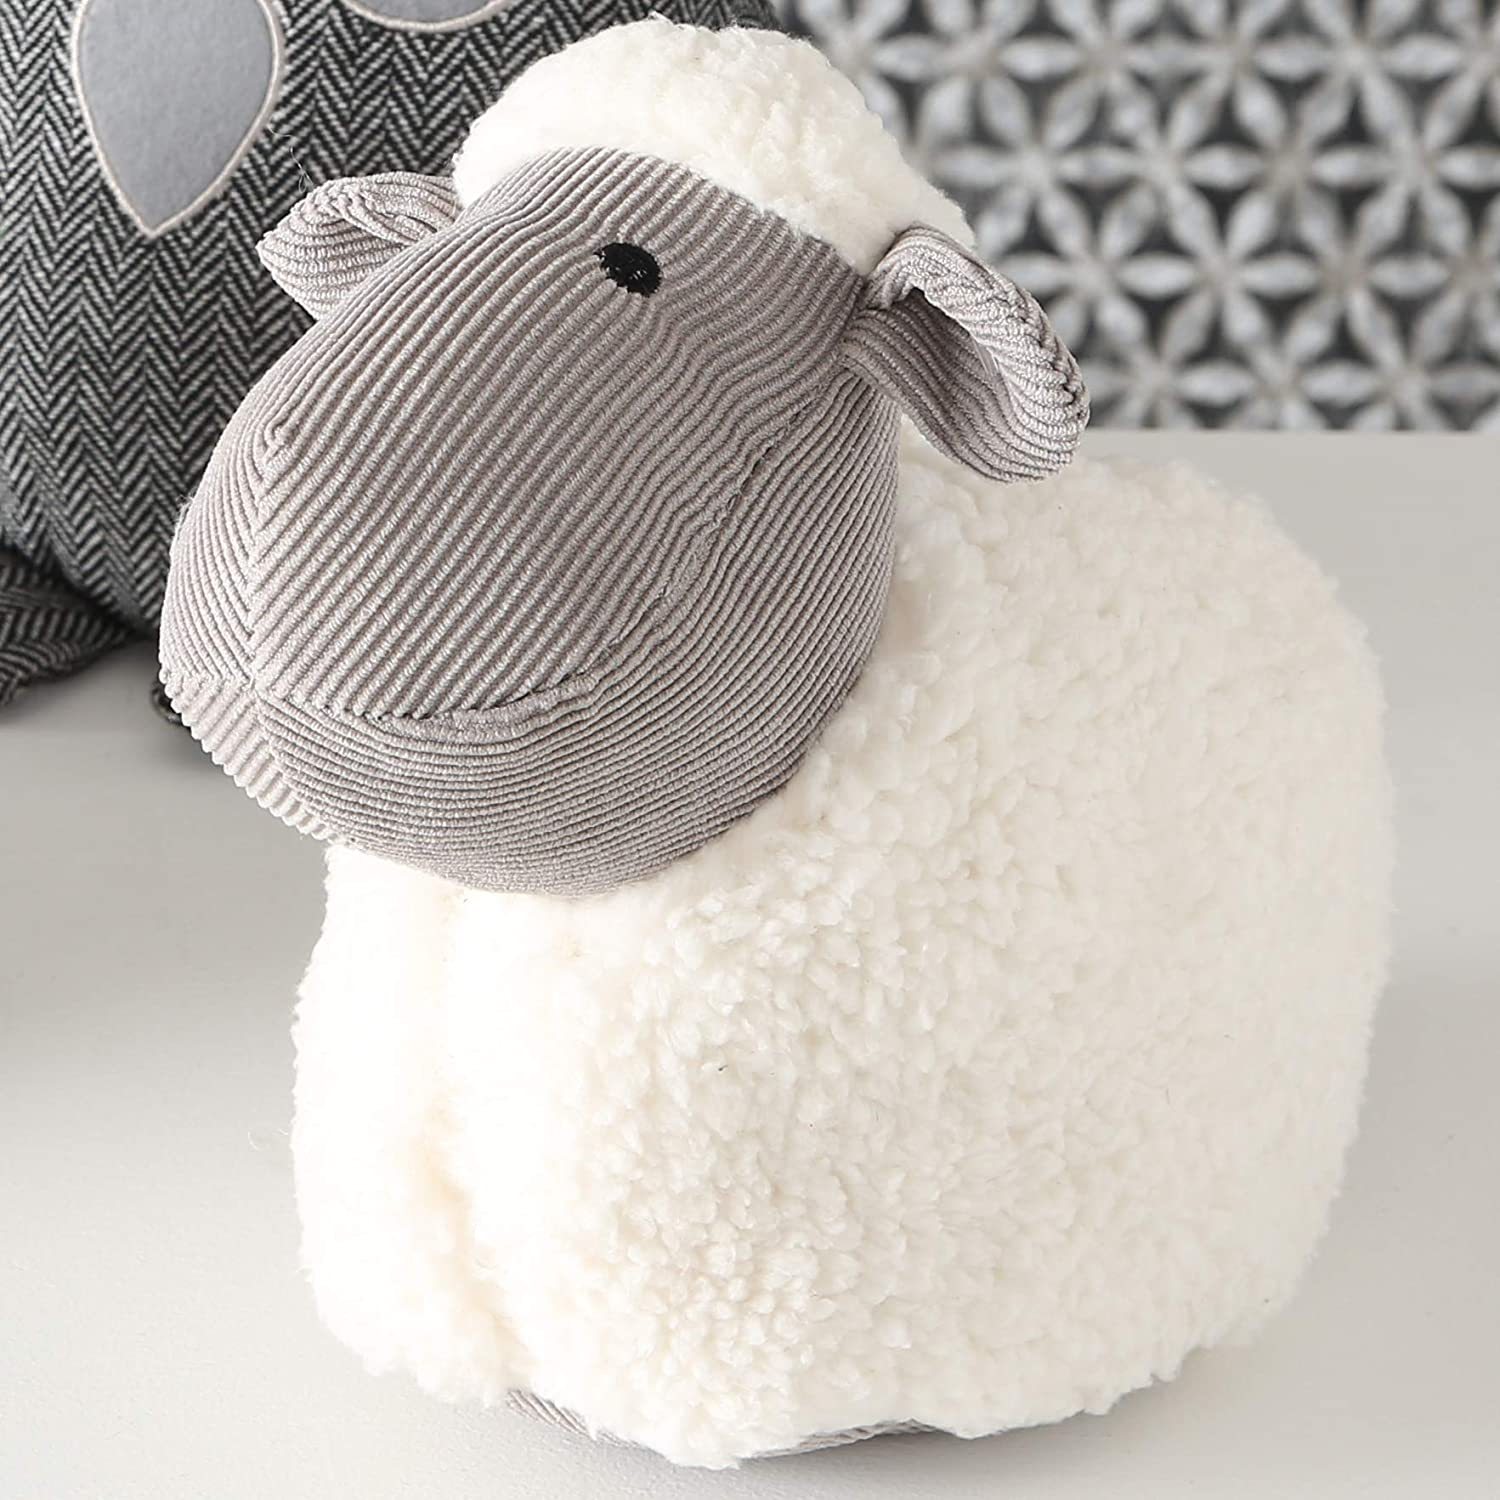 Polyester WHW Whole House Worlds Fluffy Corduroy and Plush Weighted Prop Sand Filling Embroidery Eyes The Baby Lamb Door Stopper Rustic White 8 3//4 Inches Tall 2.3 Pounds